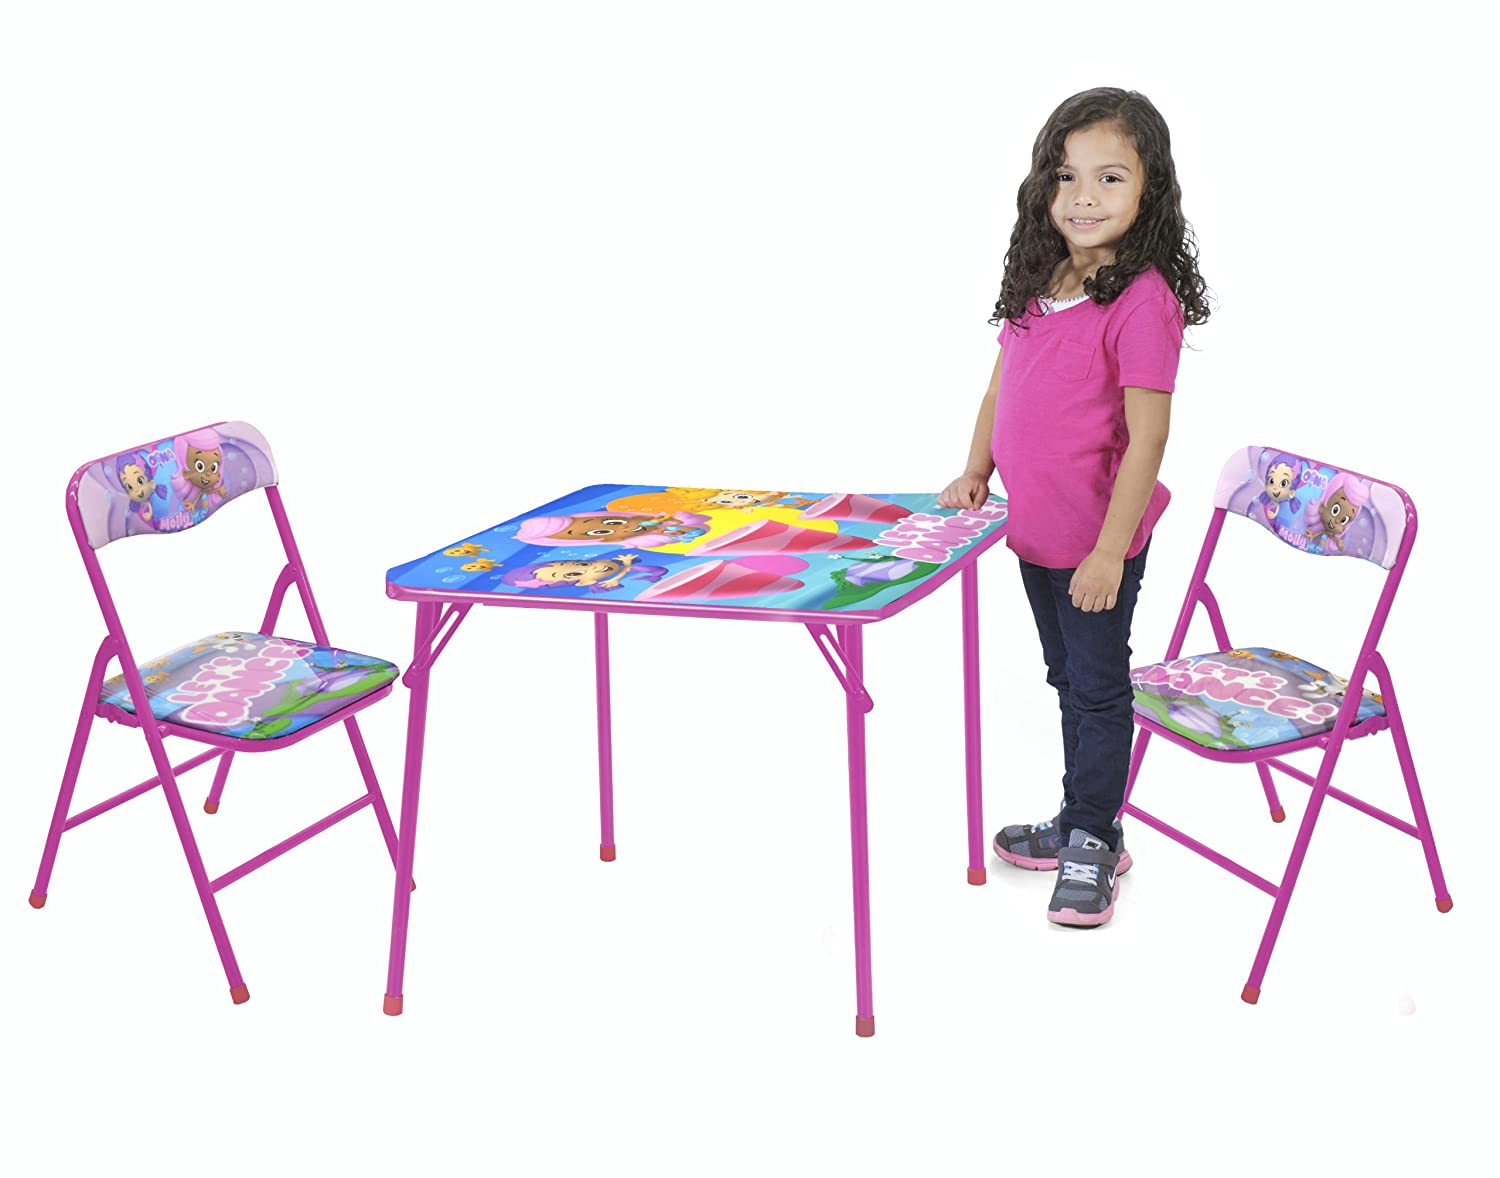 Amazon.com: Nickelodeon Bubble Guppies Table and Chair Set, 3-Piece ...